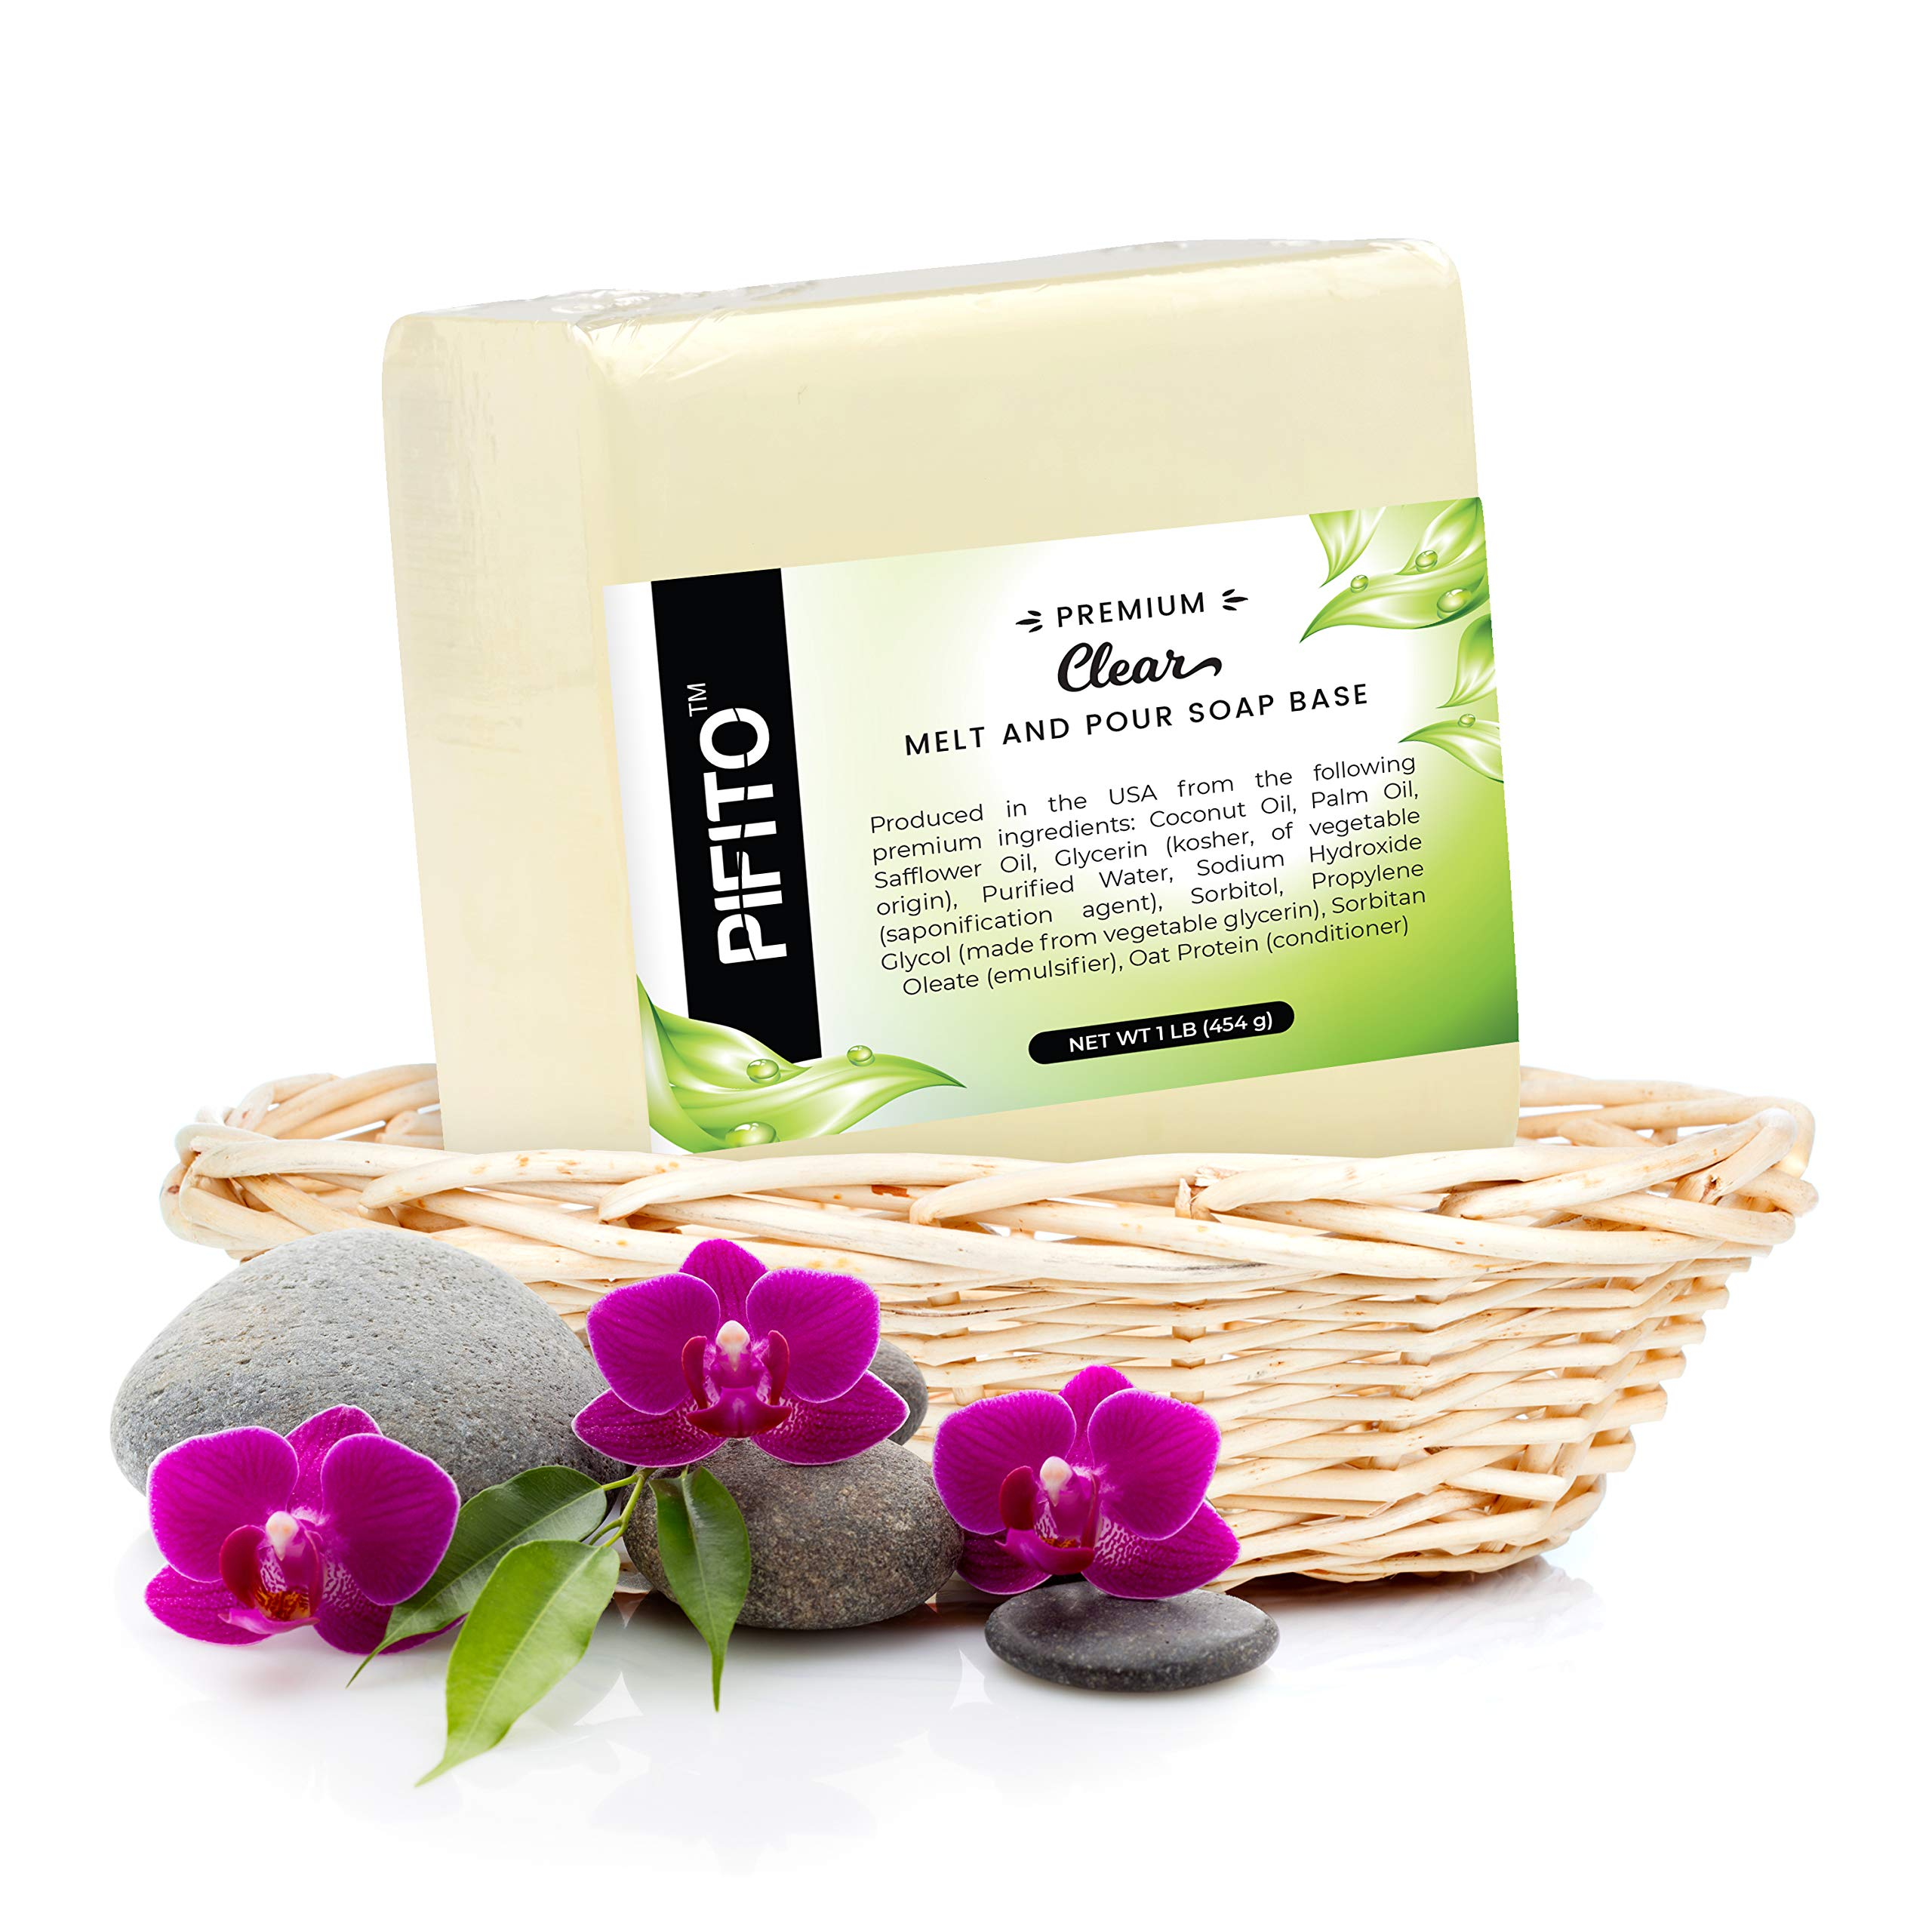 100/% Organic Goats Milk /& Glycerin Soap Base by Velona 24 lb Melt /& Pour All Natural Bar for The Best Result Size